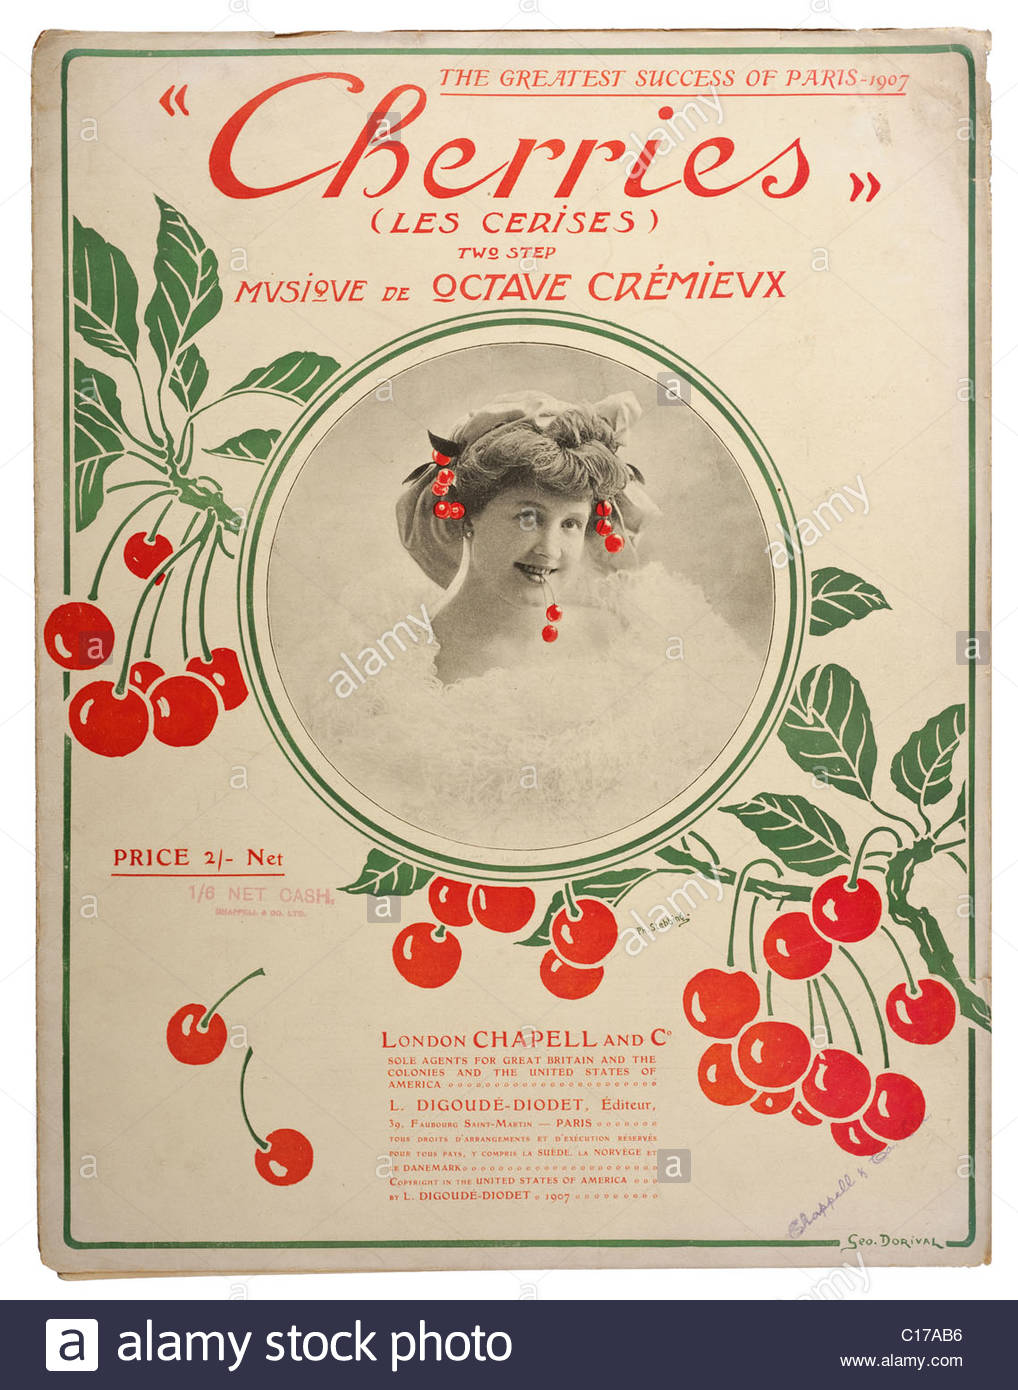 Old sheet music front cover from 1906 titled Cherries two step by Octave Cremievx. EDITORIAL ONLY - Stock Image